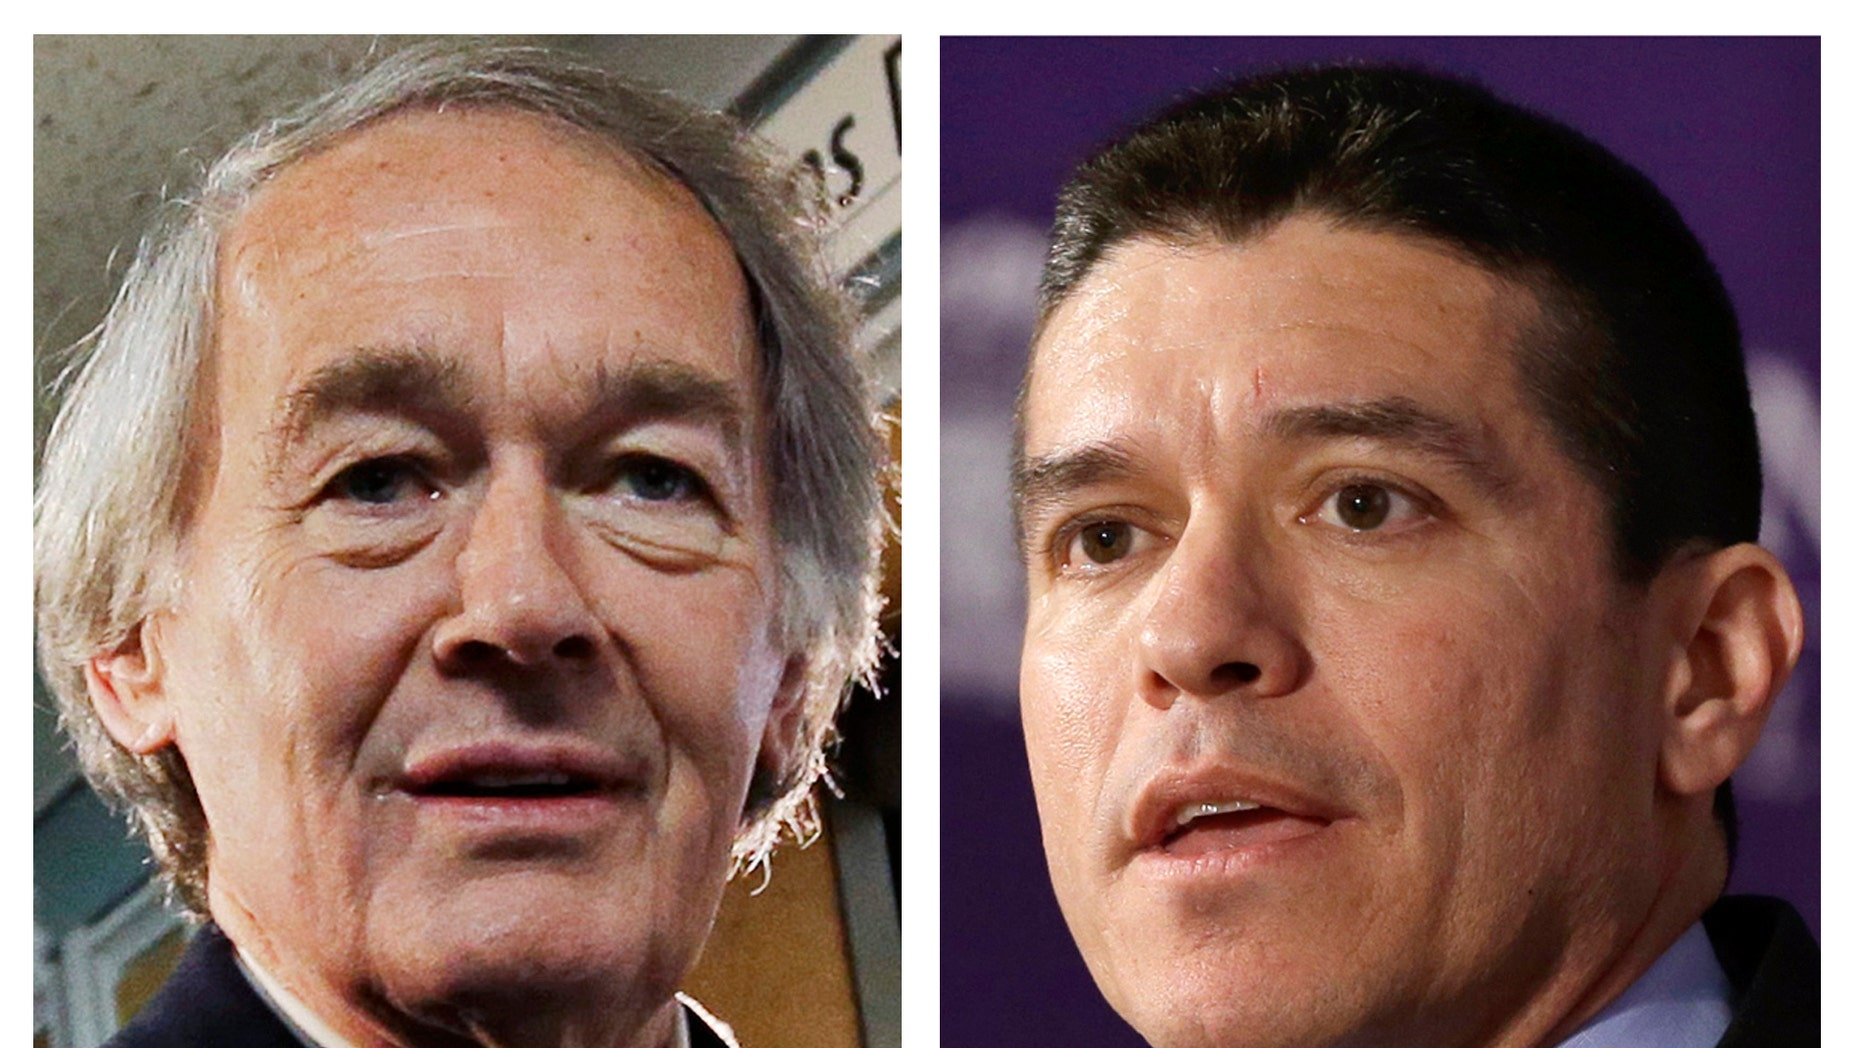 Democrat U.S. Rep. Ed Markey, left, and Republican Gabriel Gomez, right, are competing in the U.S. Senate special election to fill the seat vacated when John Kerry was appointed as Secretary of State.